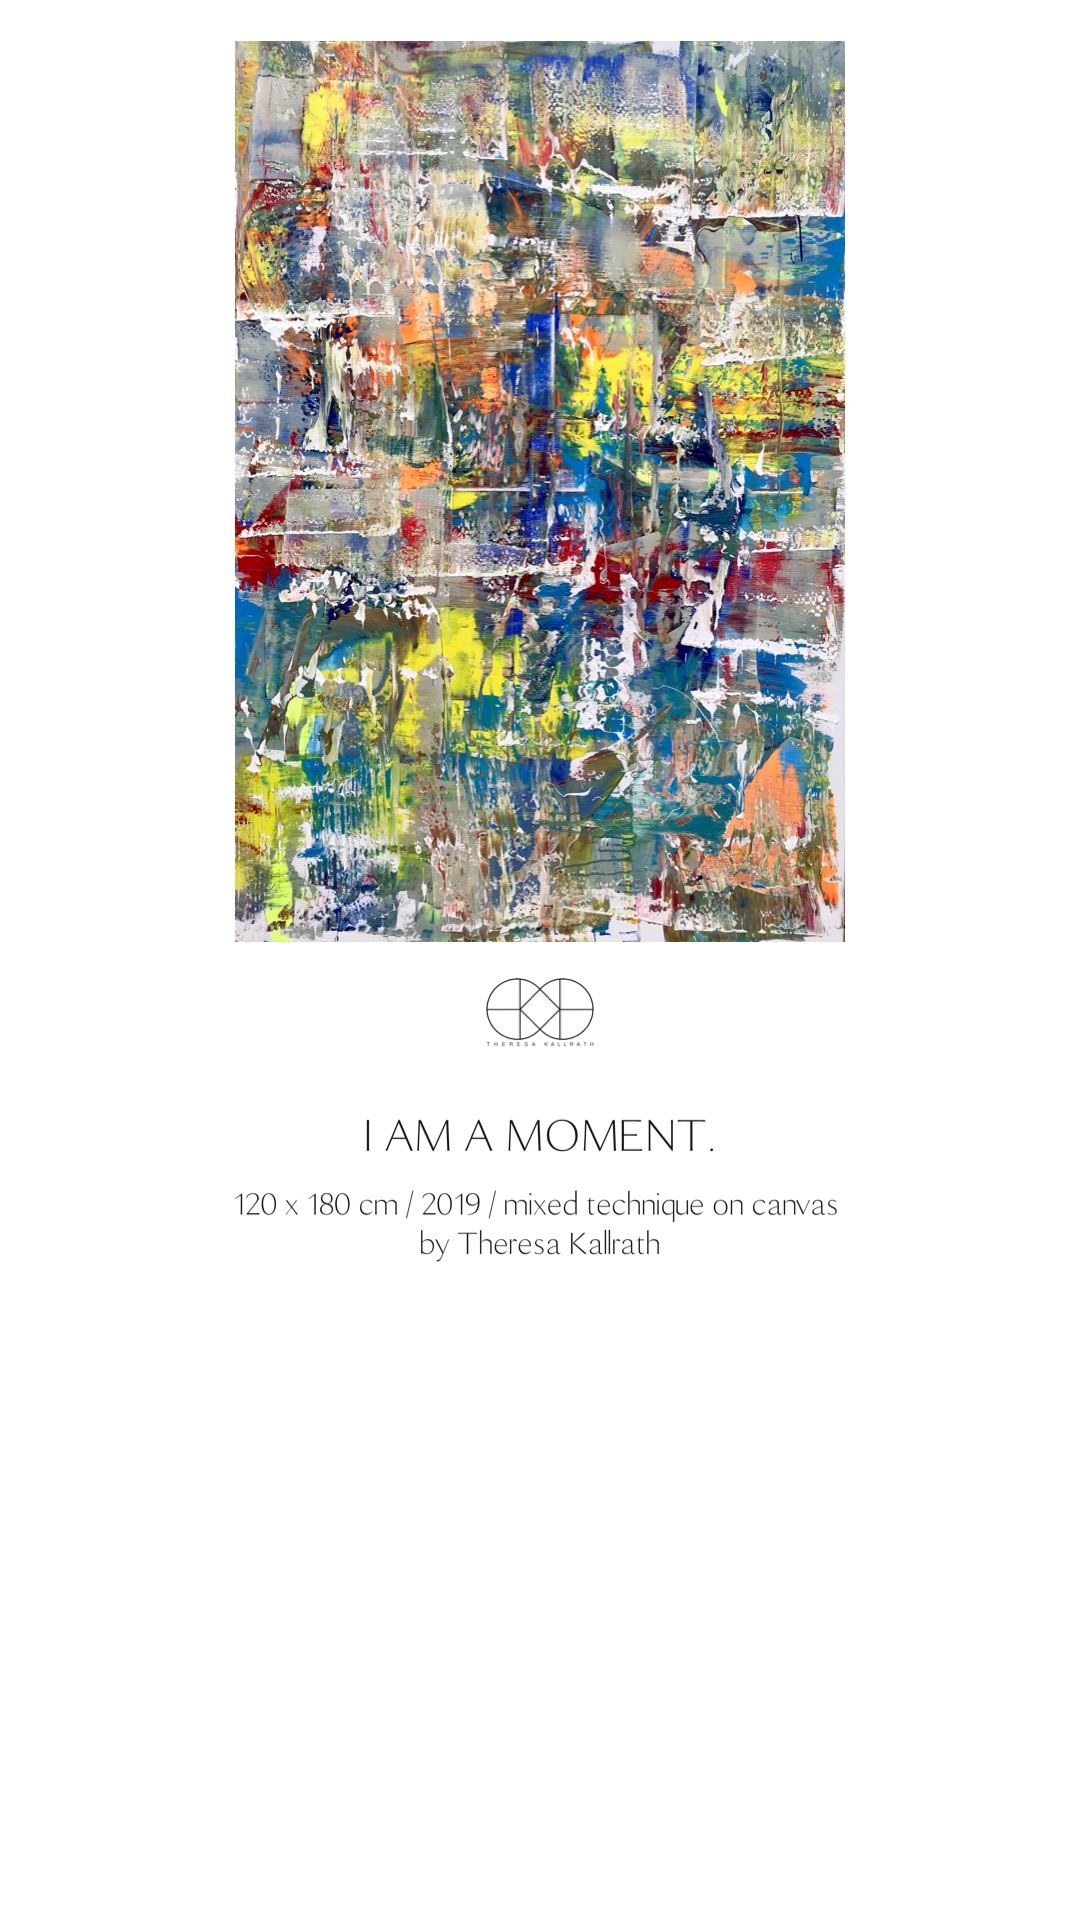 Theresa Kallrath_Iam a moment_2019